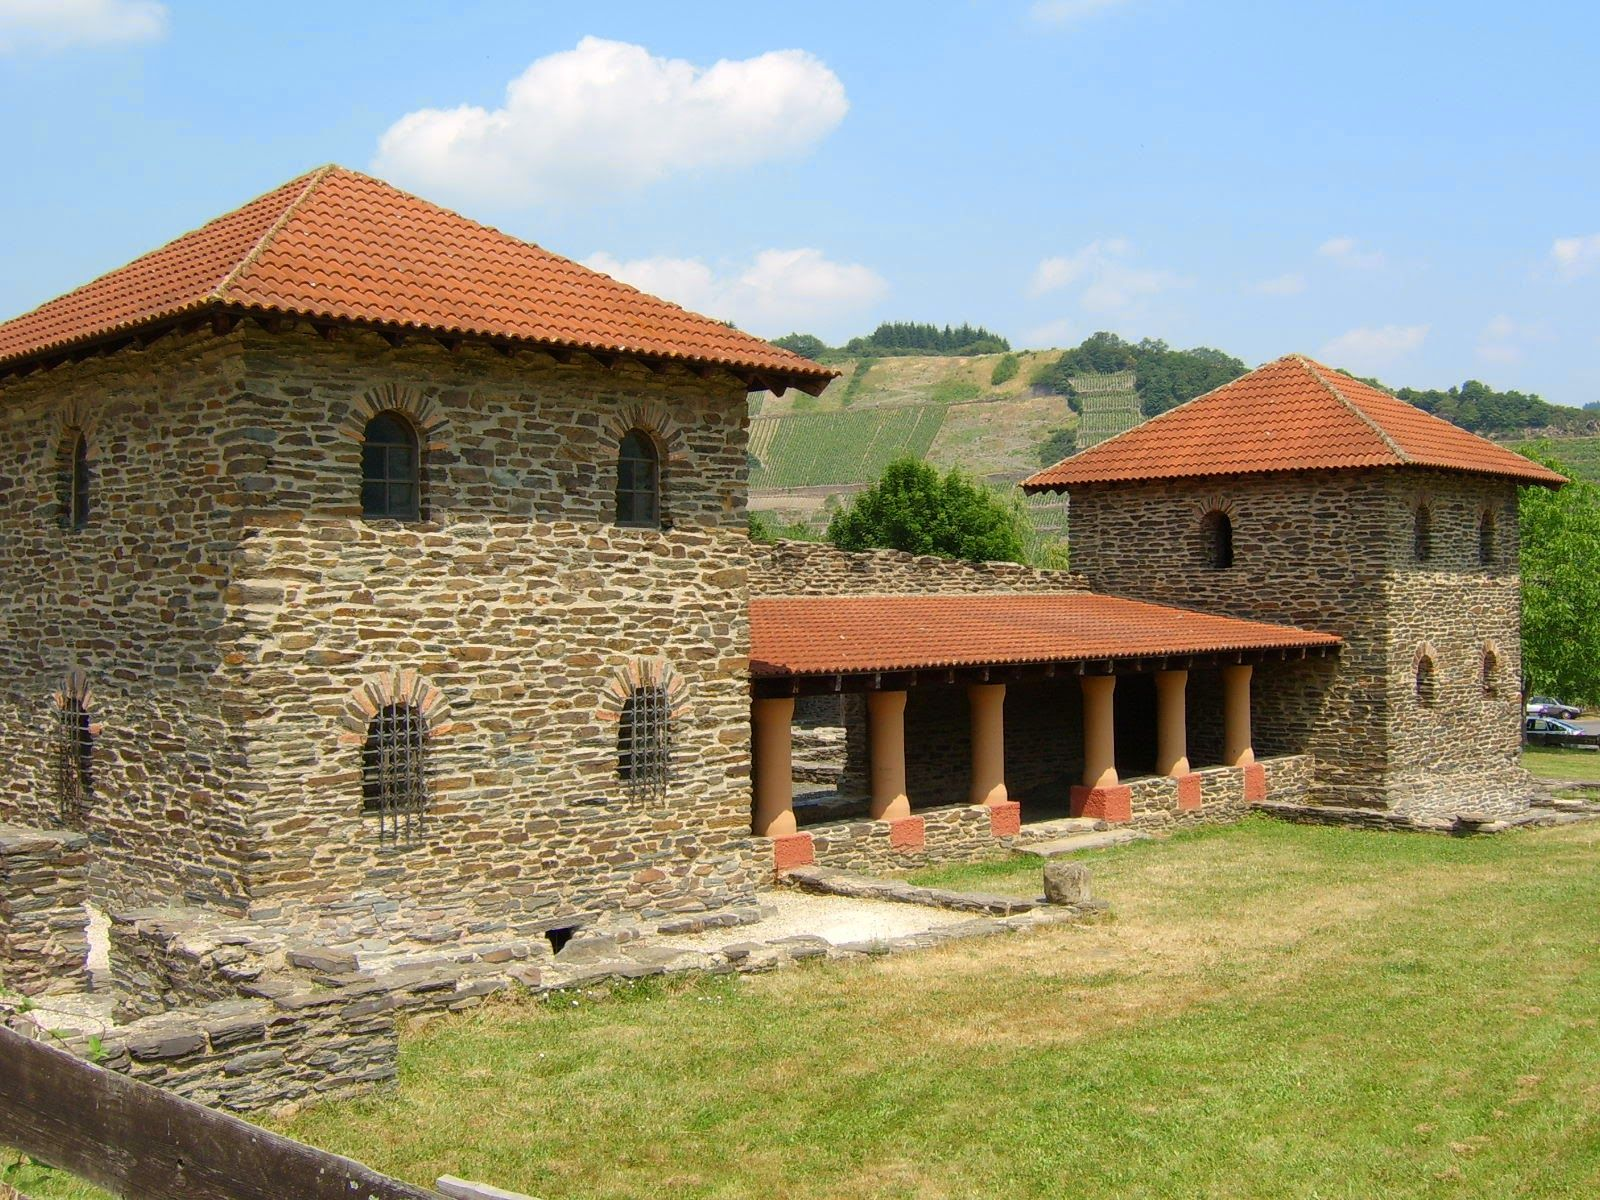 The Ancient Roman Villa Rustica in Mehring. Architecture